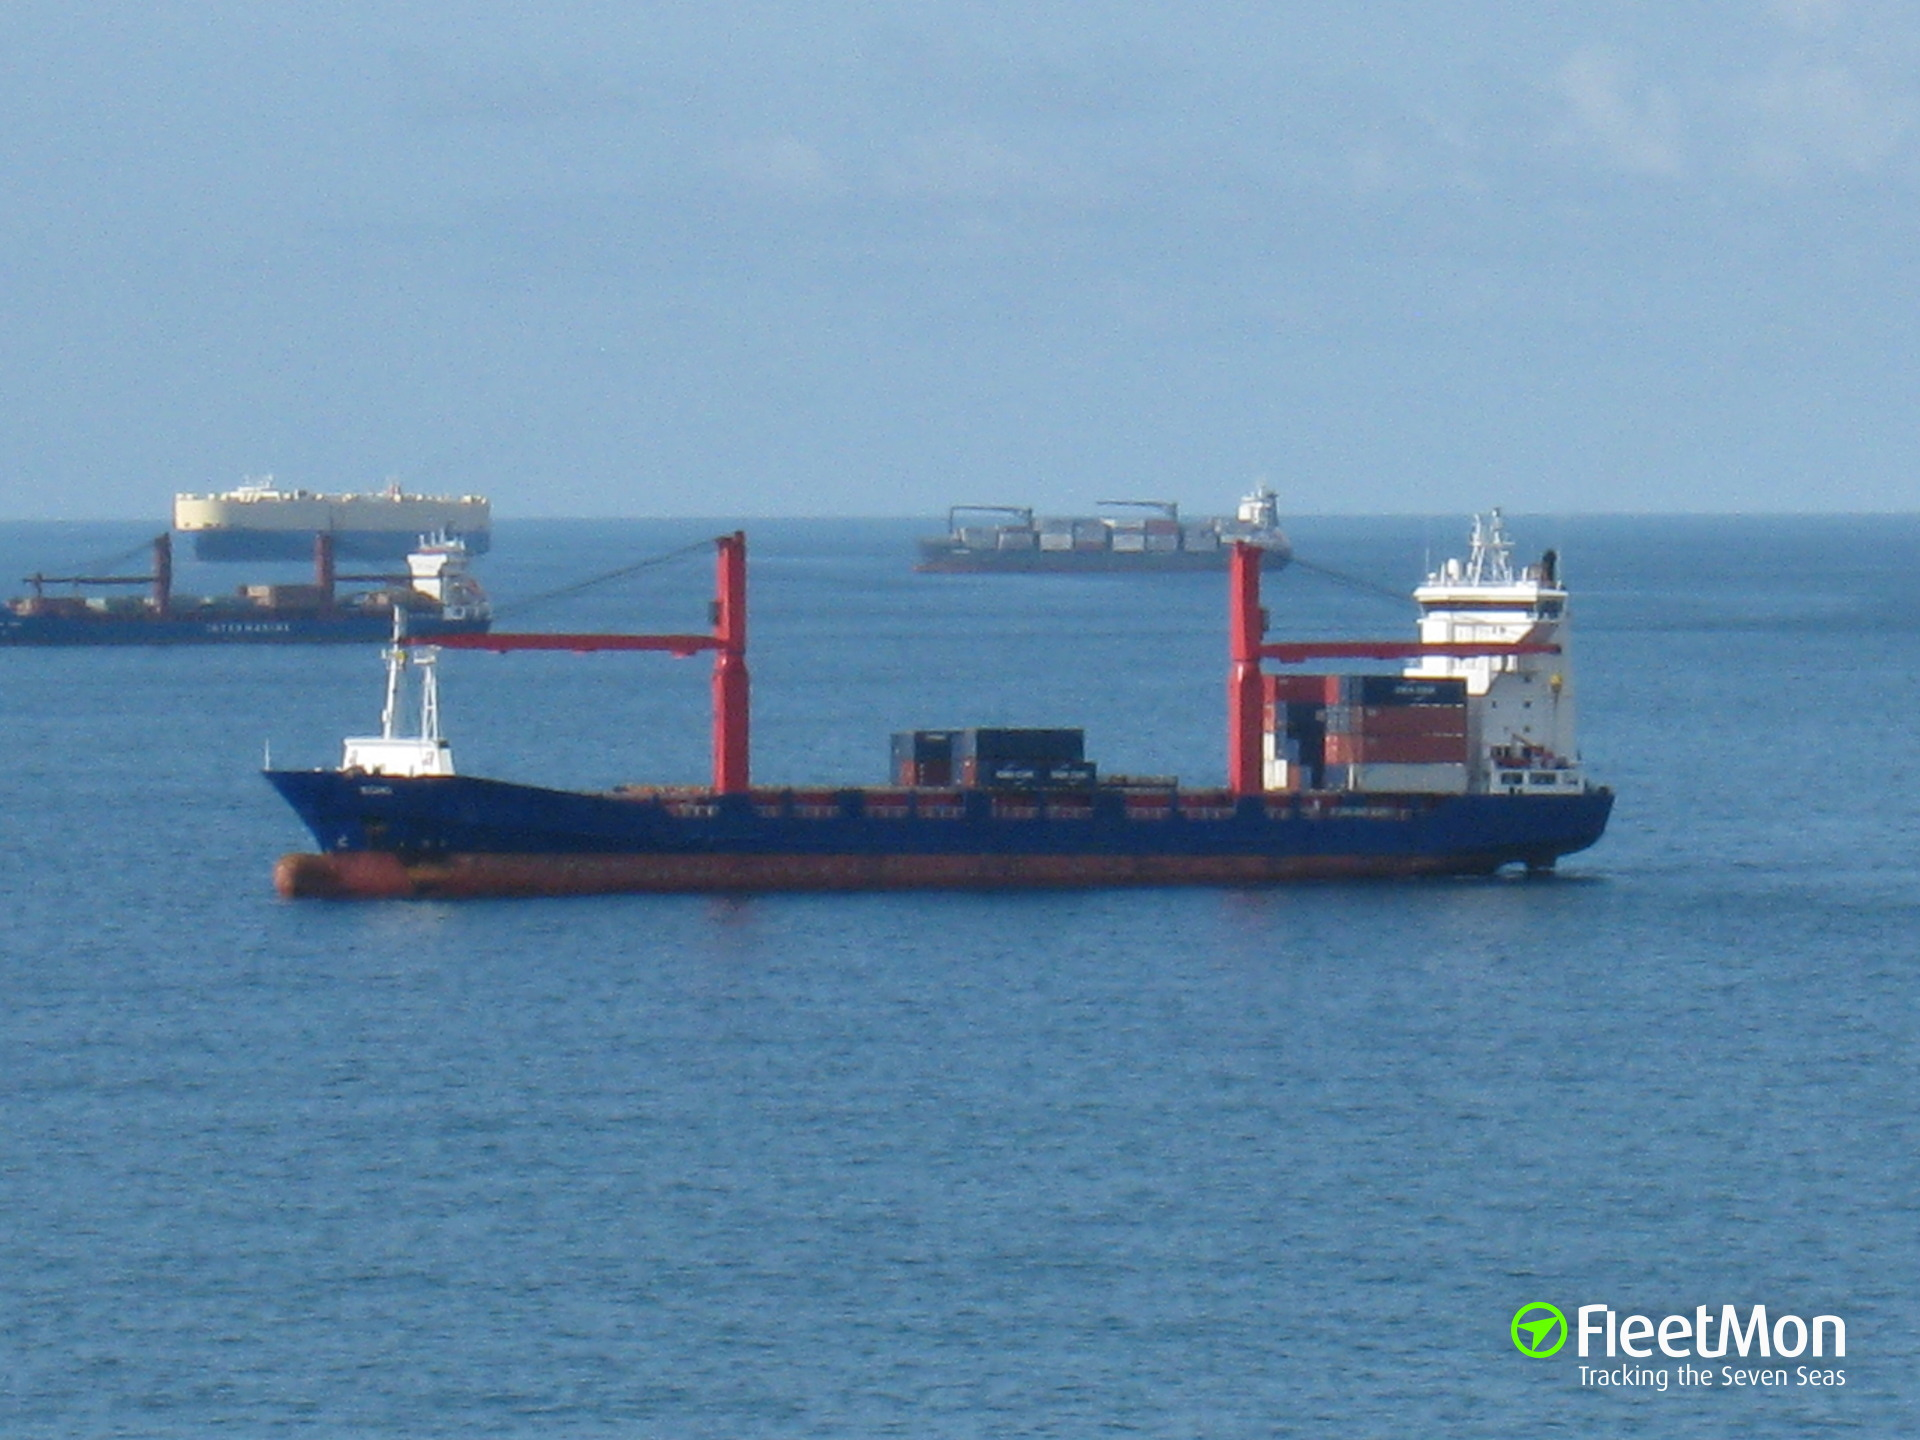 Container ship NICA I refloated after being aground for 7 weeks